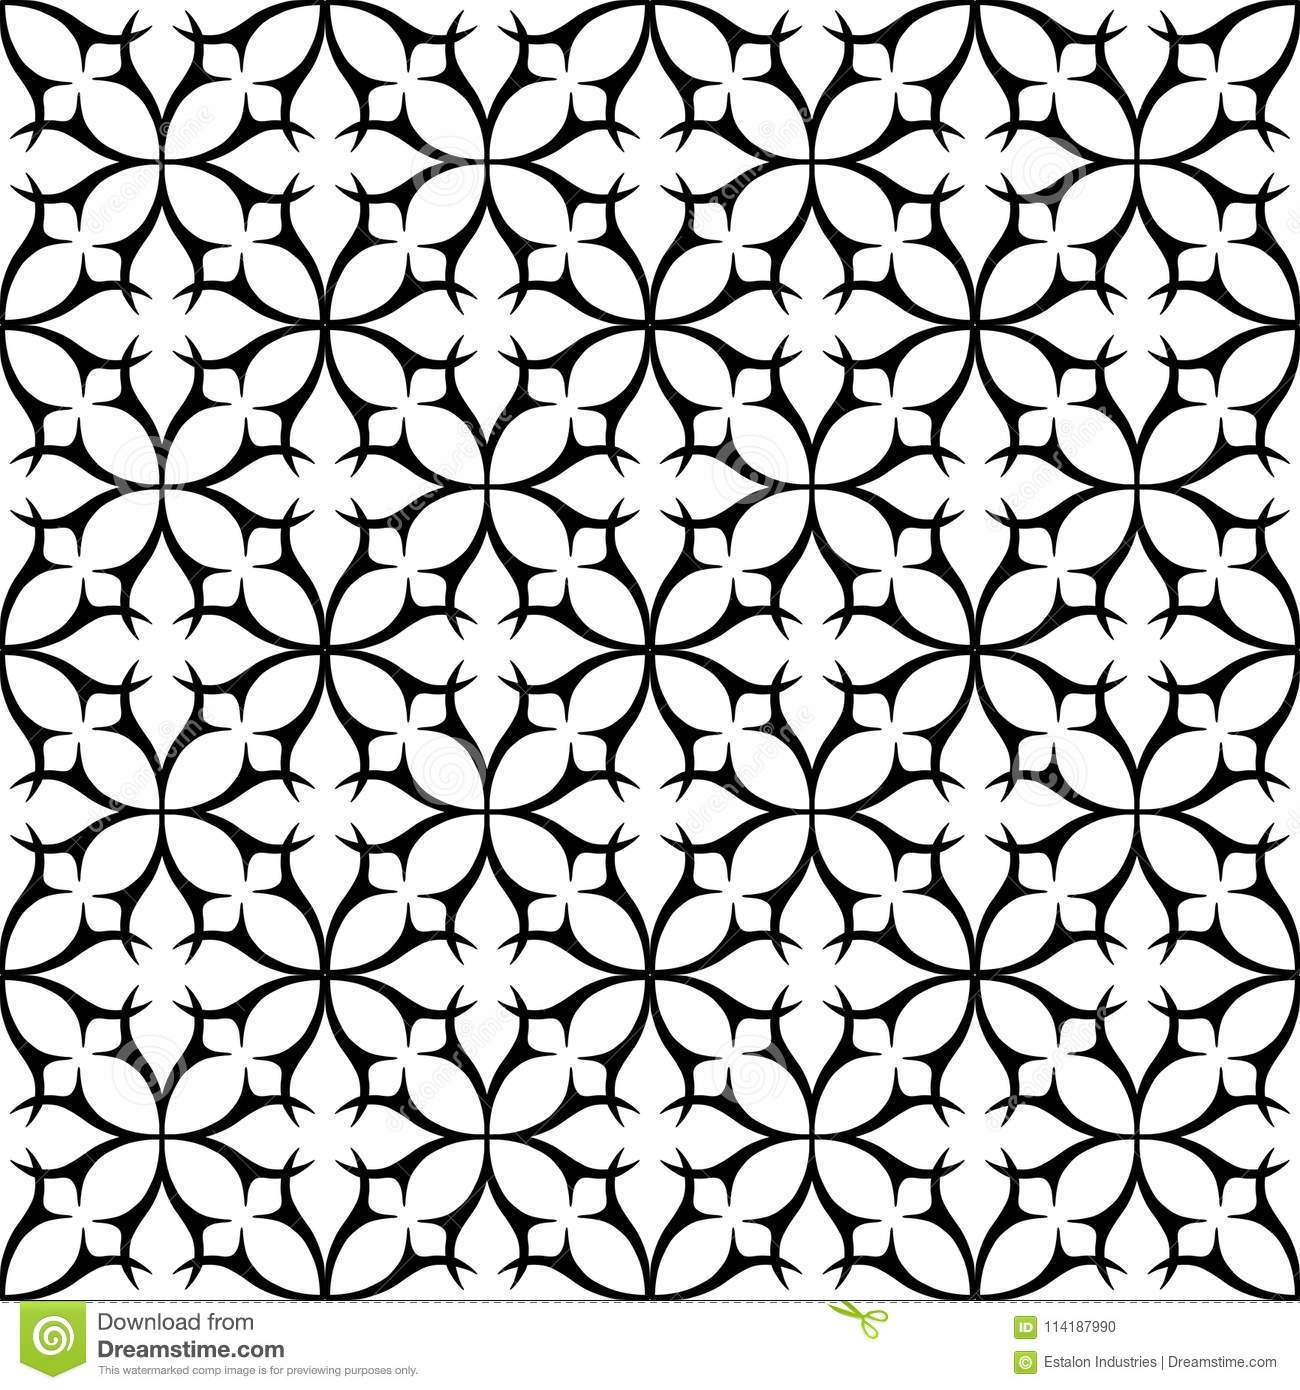 https www dreamstime com two colour geometric tile thorn circle seamless repeat pattern background could be used background pattern black white image114187990